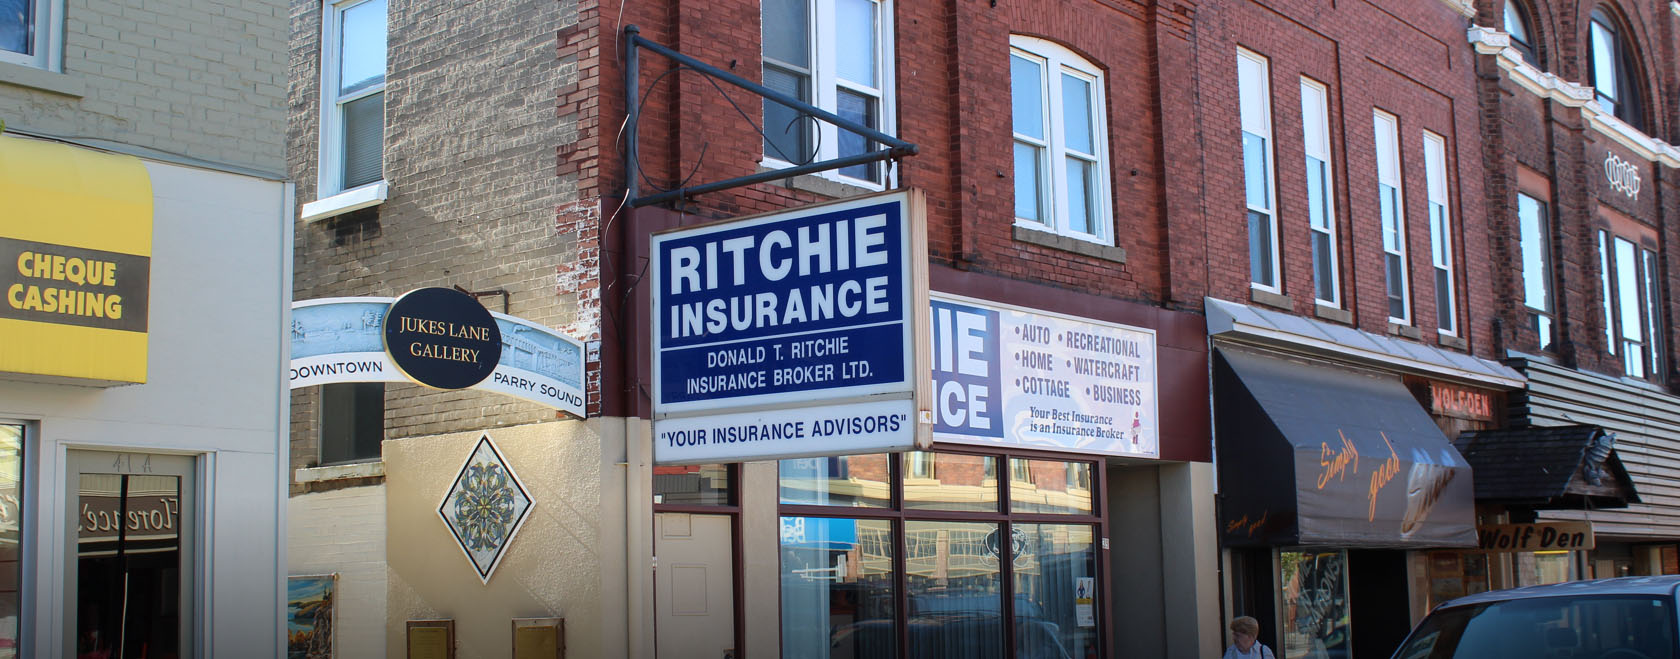 Ritchie Insurance building relationships